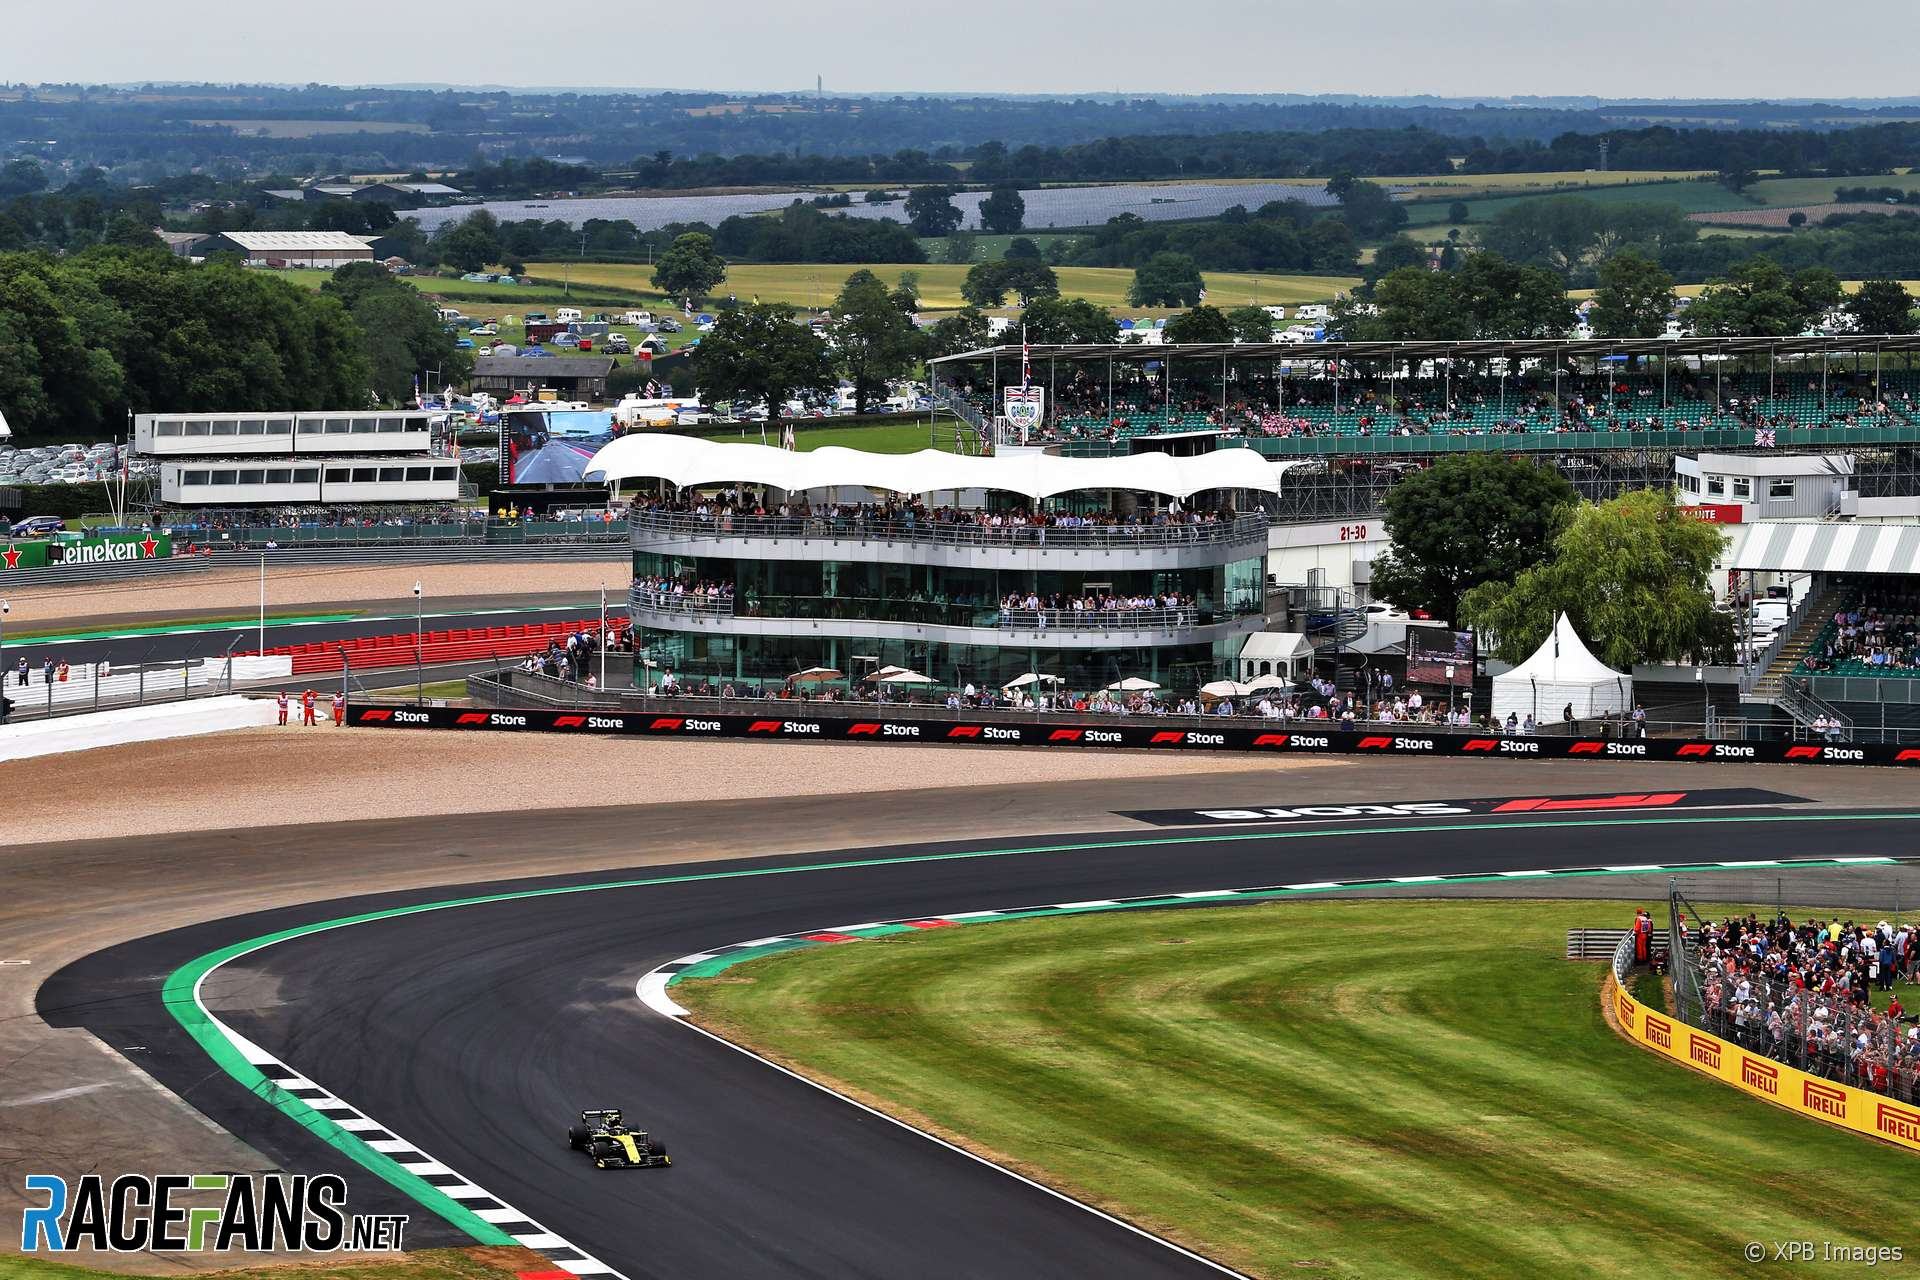 An F1 race at Silverstone this year may be more trouble than it's worth